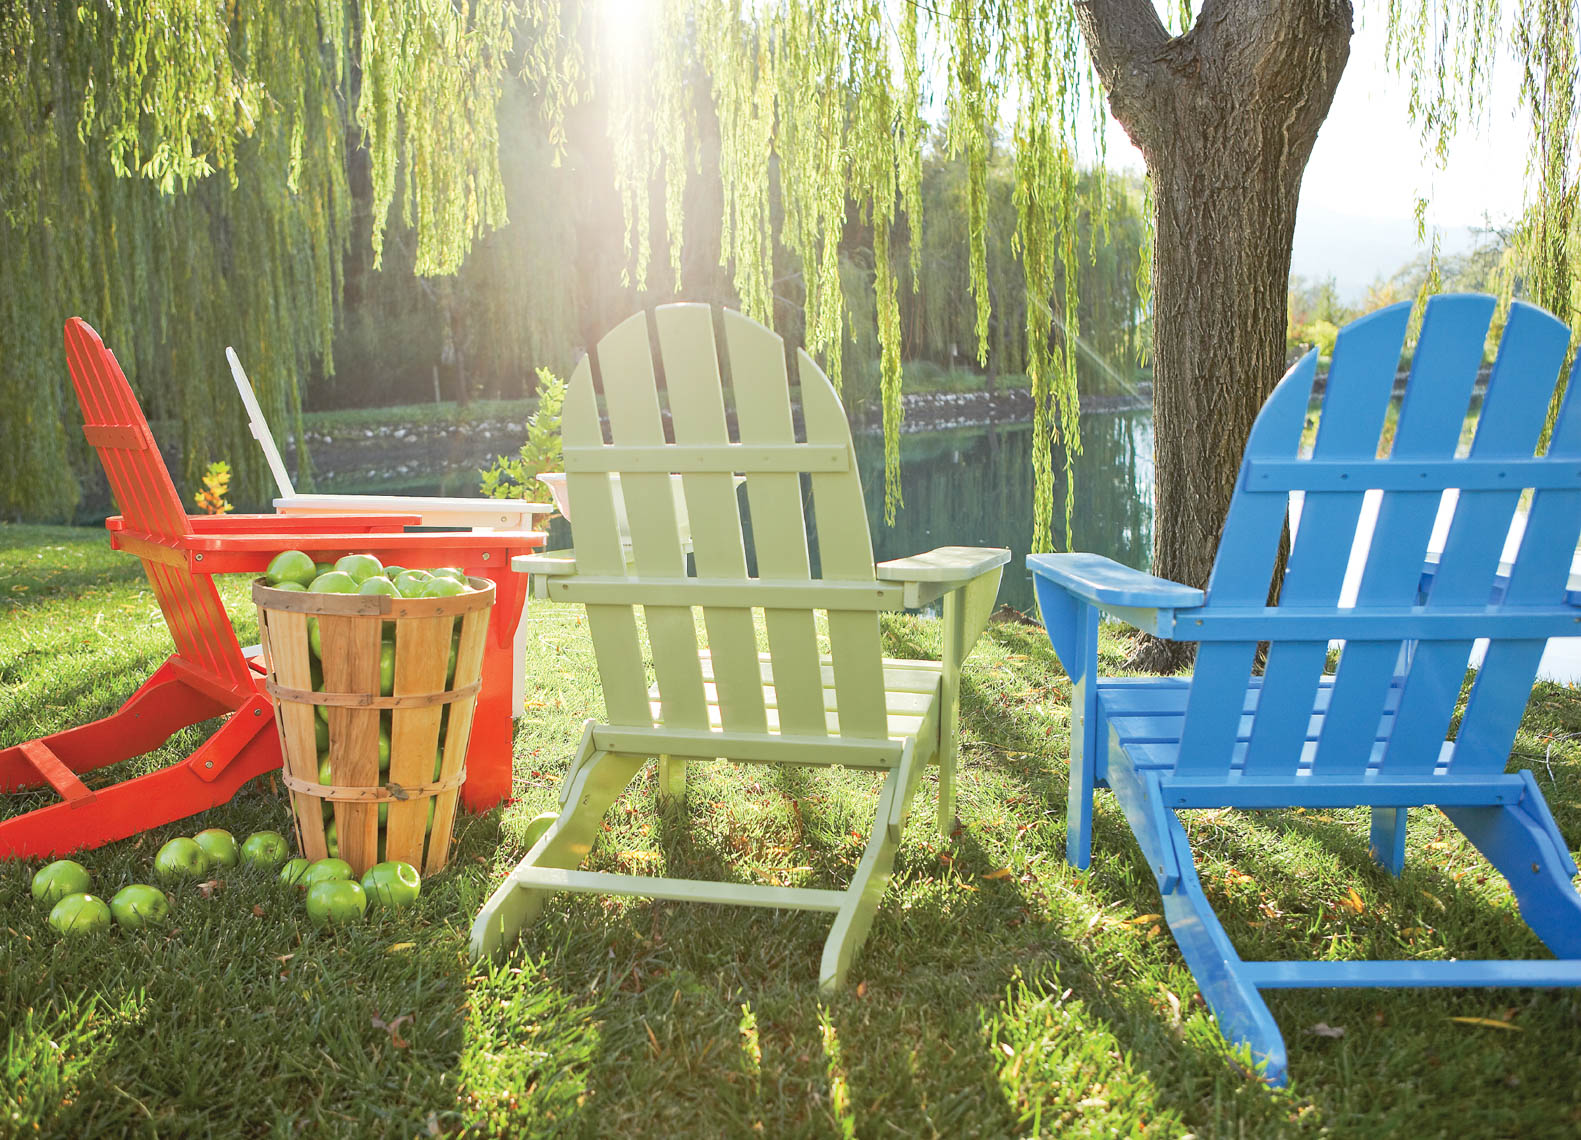 Red green and blue adirondack chairs in grass under willow tree